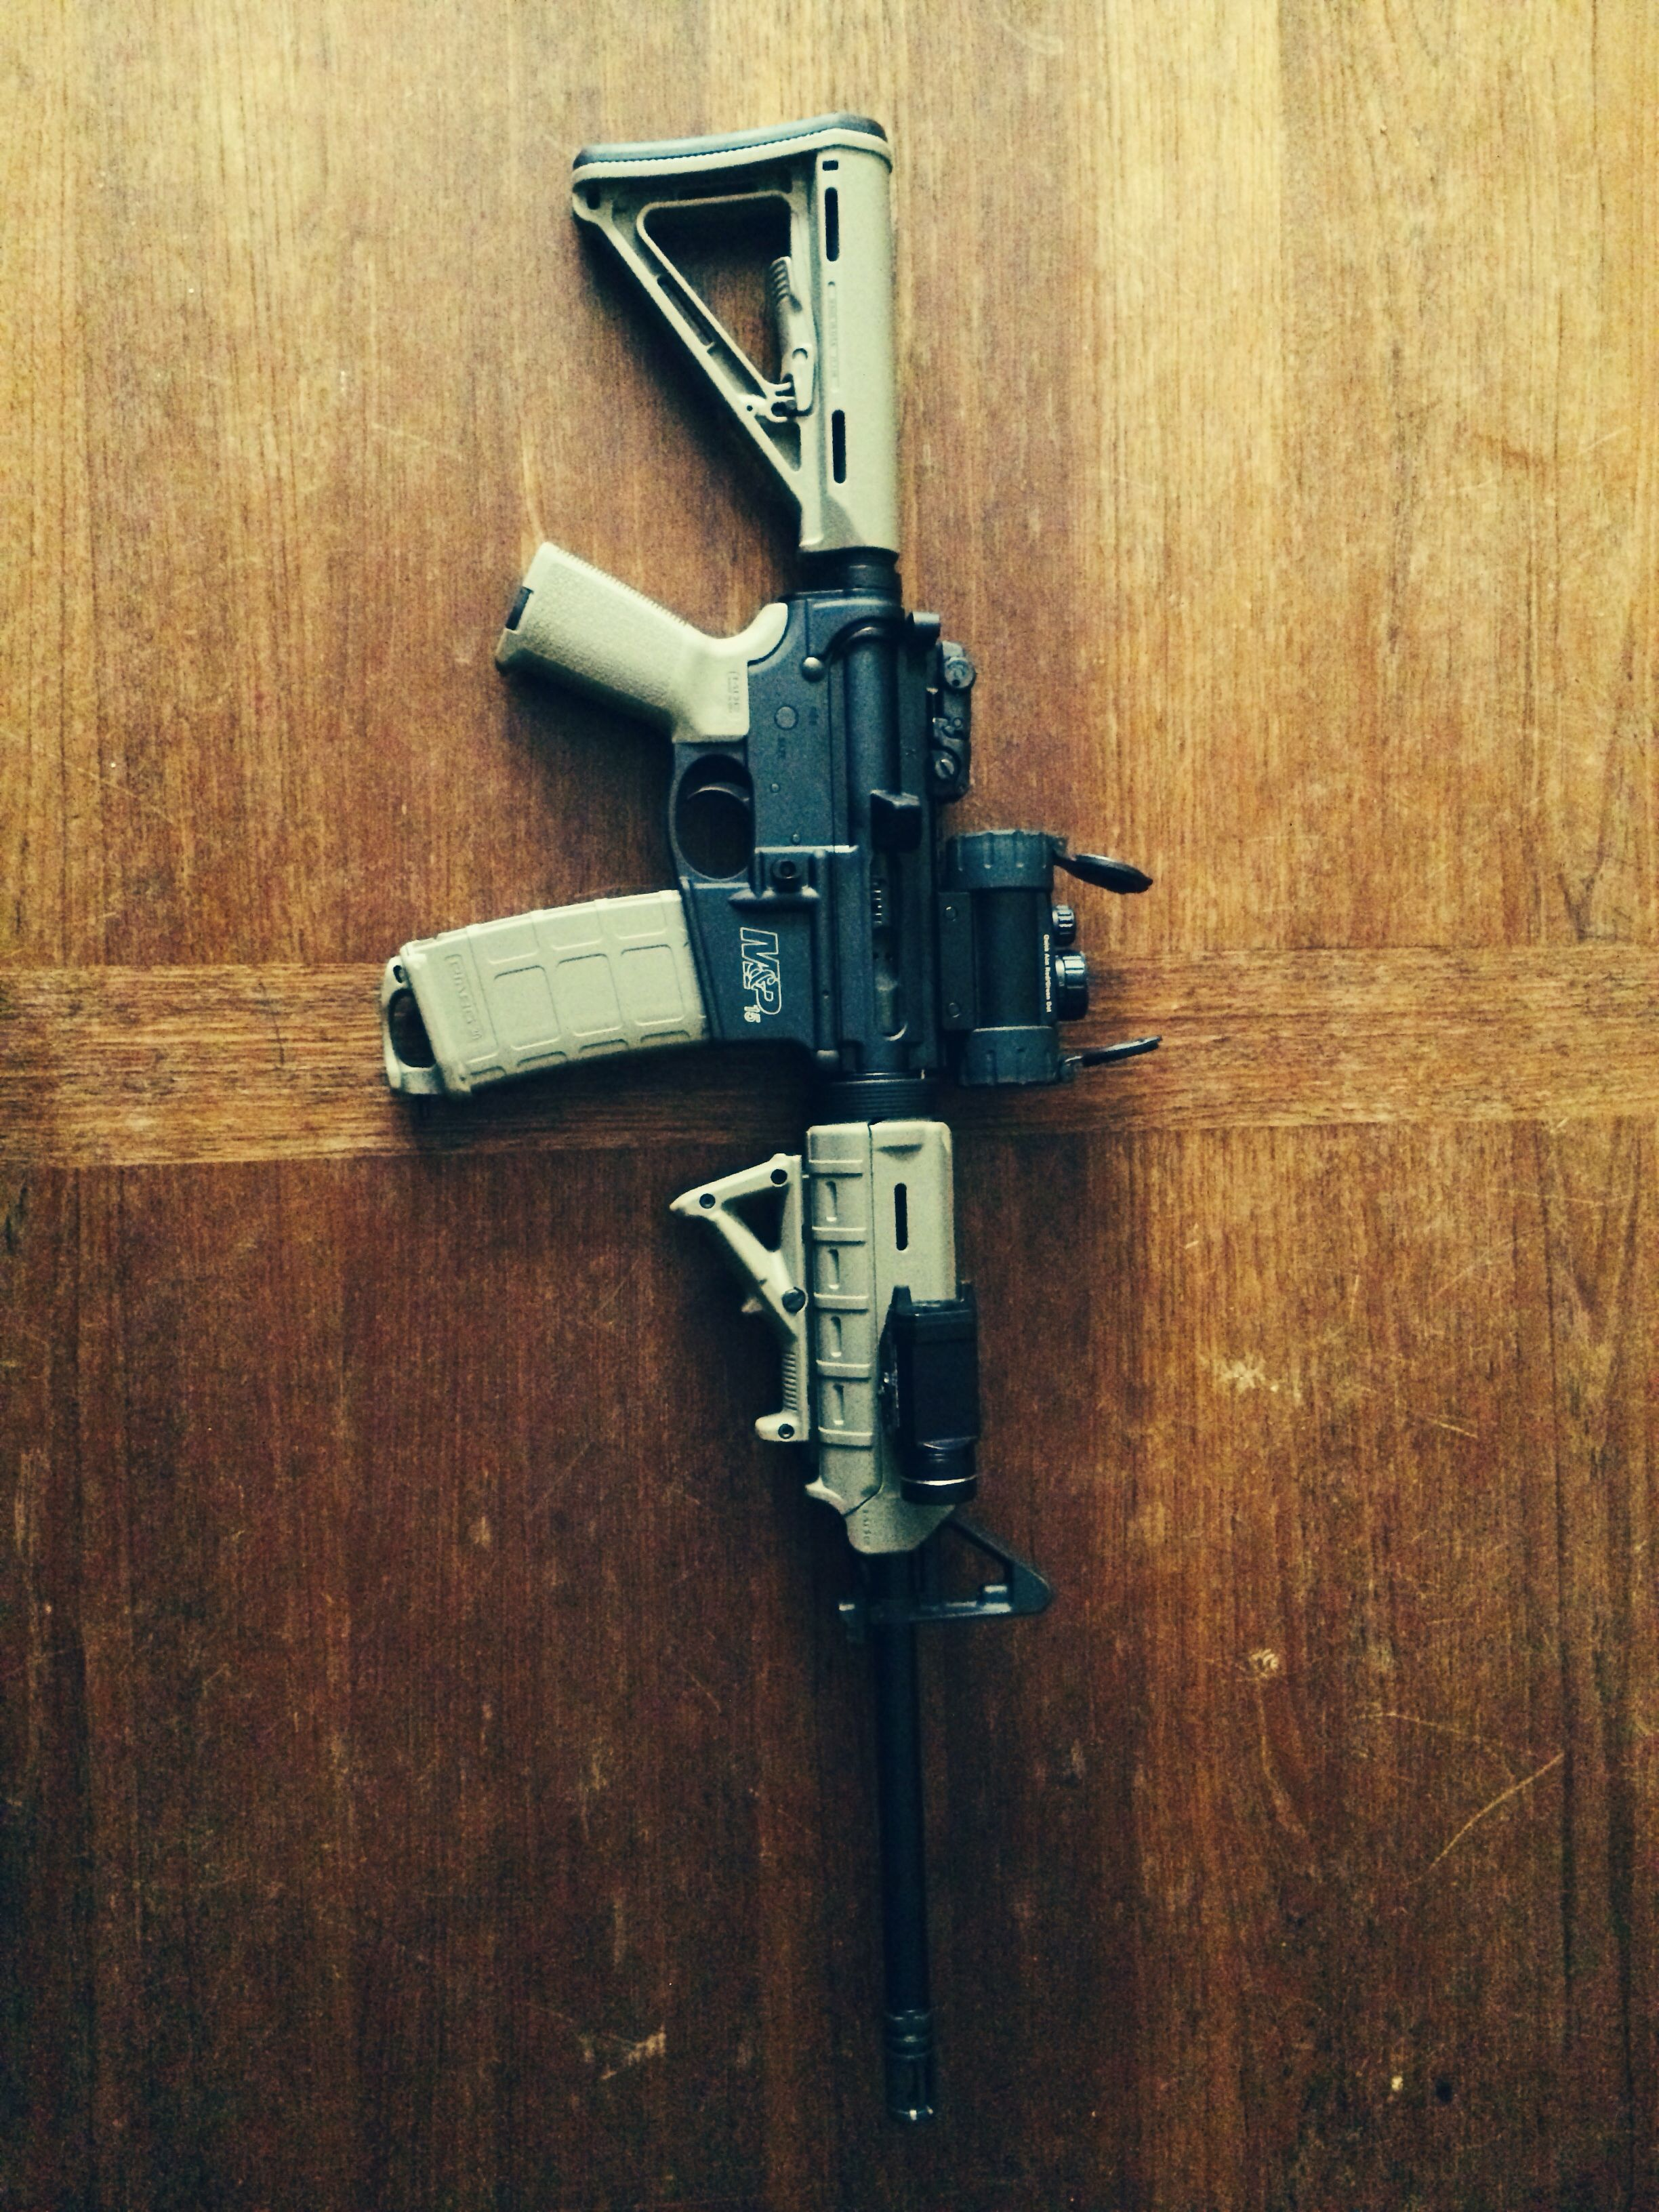 My AR 15 Smith and Wesson M&P 15 with FDE Magpul furniture UTG red